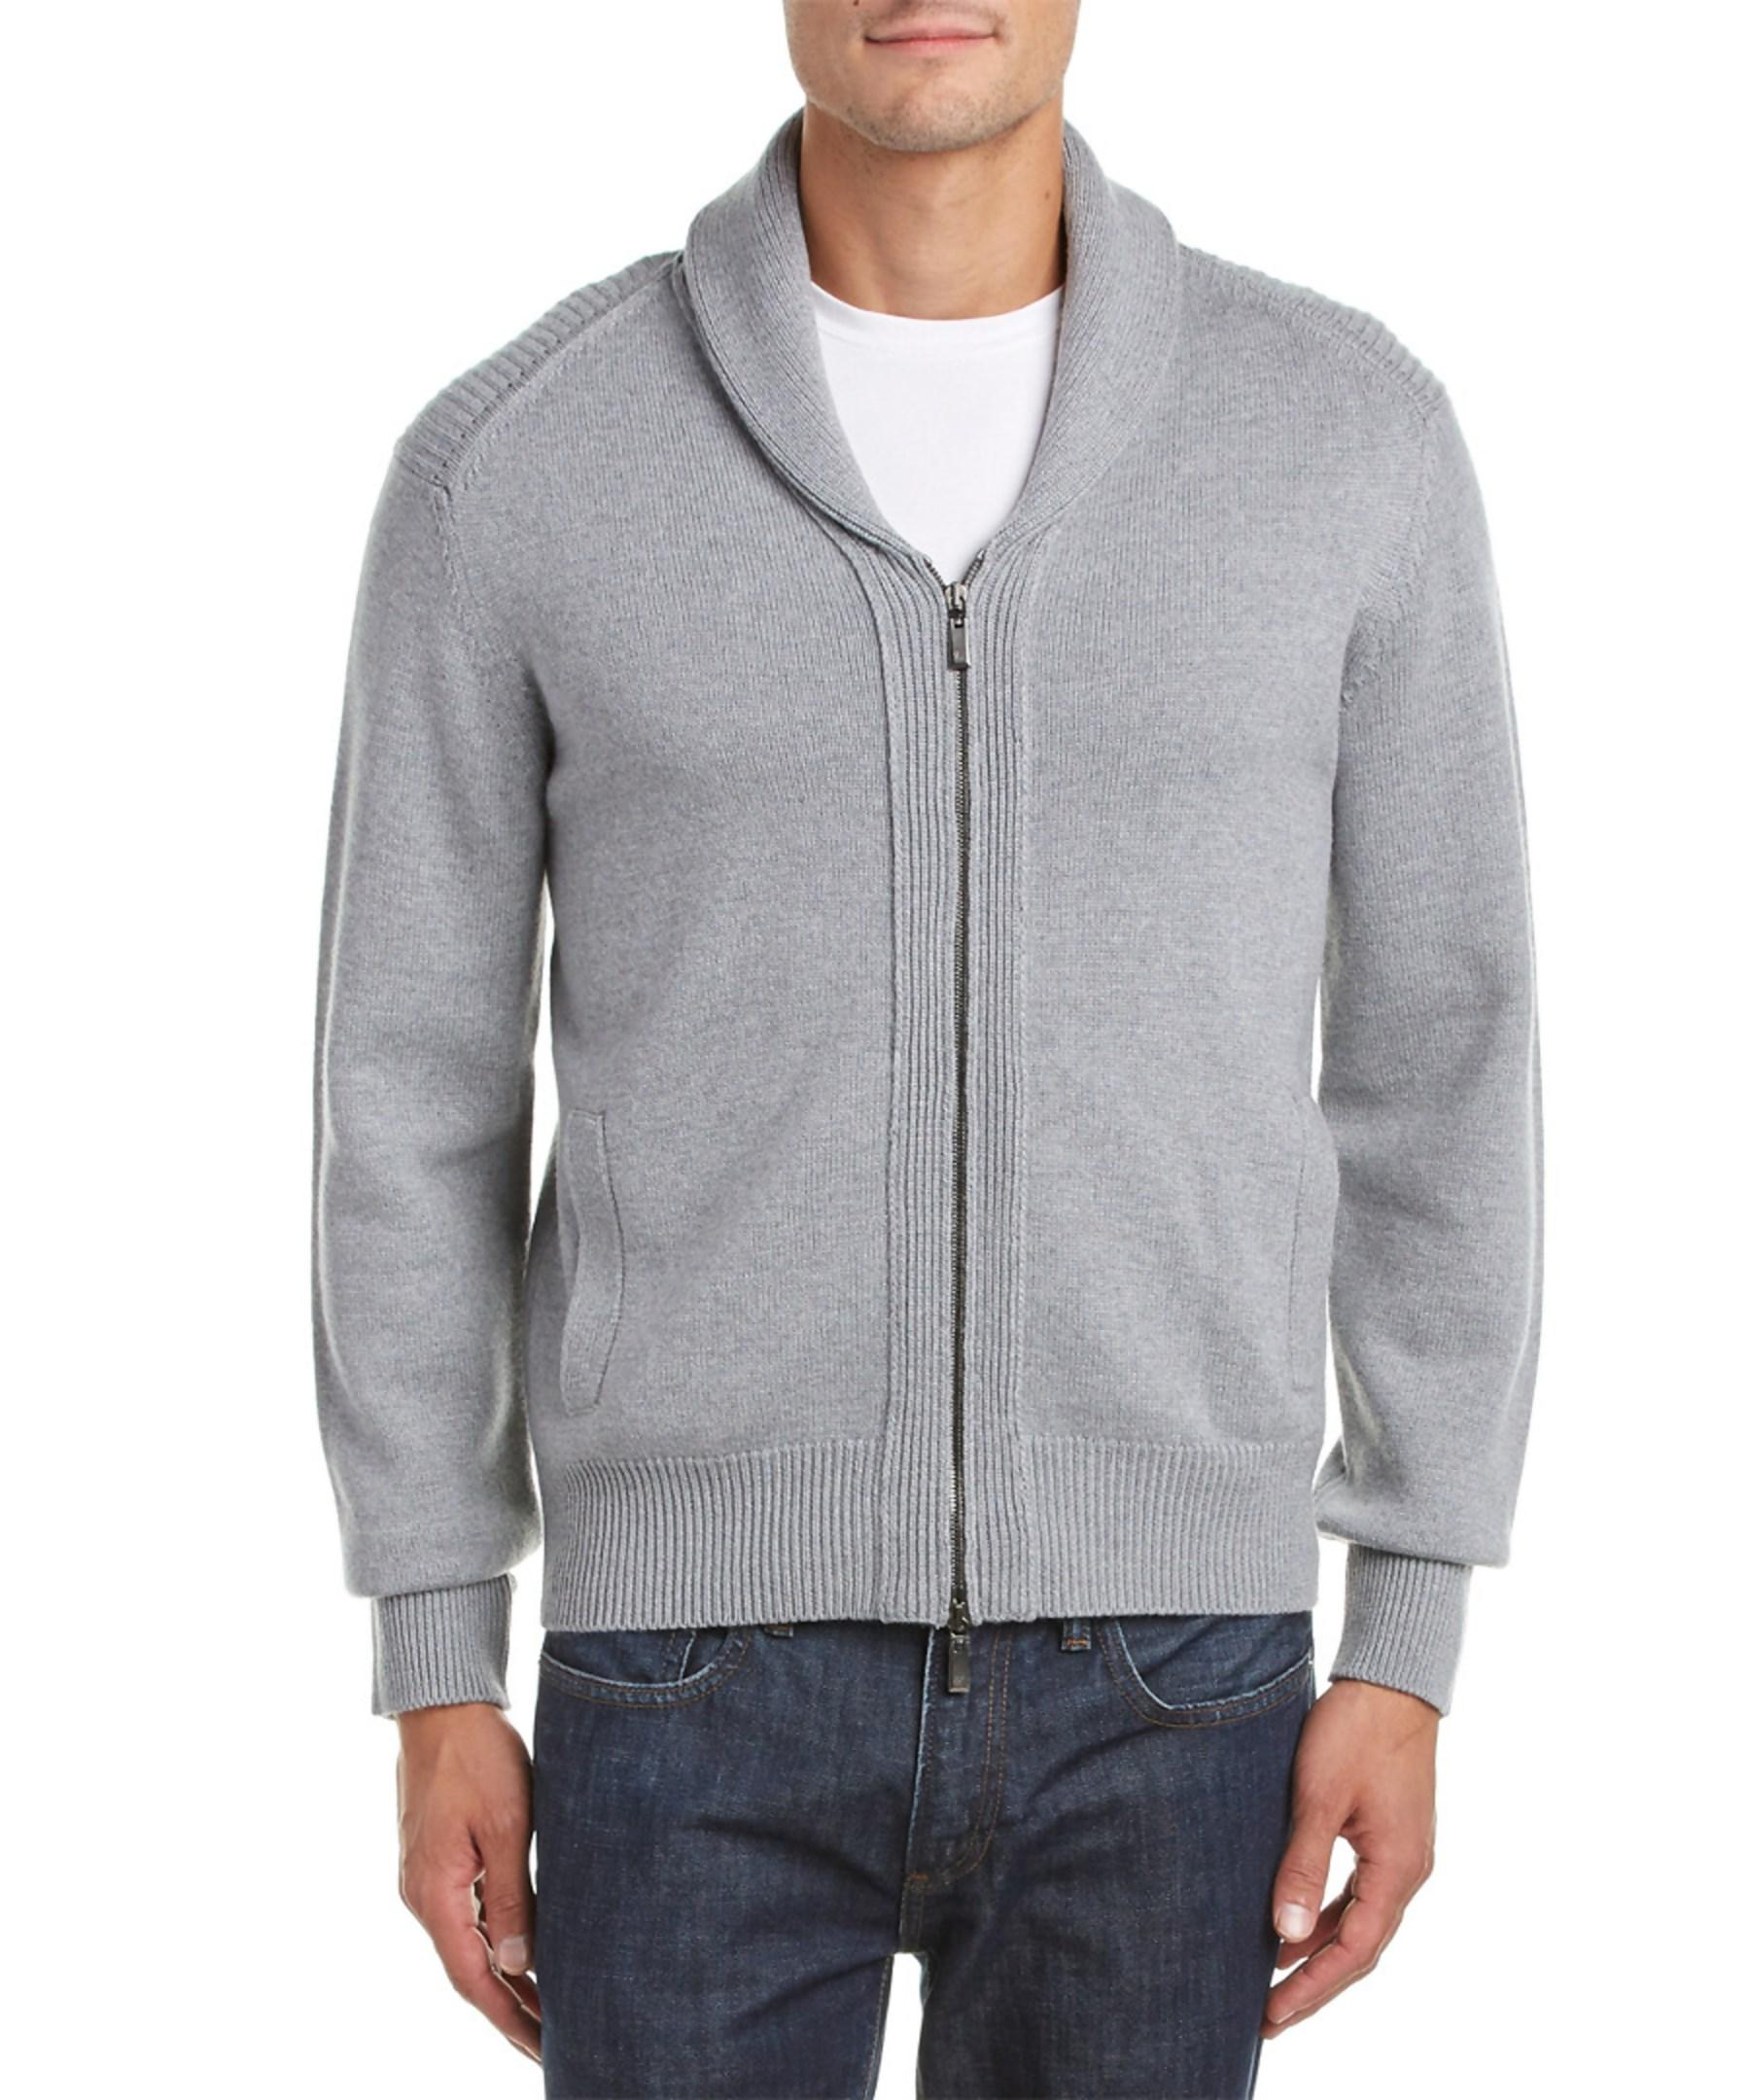 7597ed5f4 Lyst - Canali Wool Zip Sweater in Gray for Men